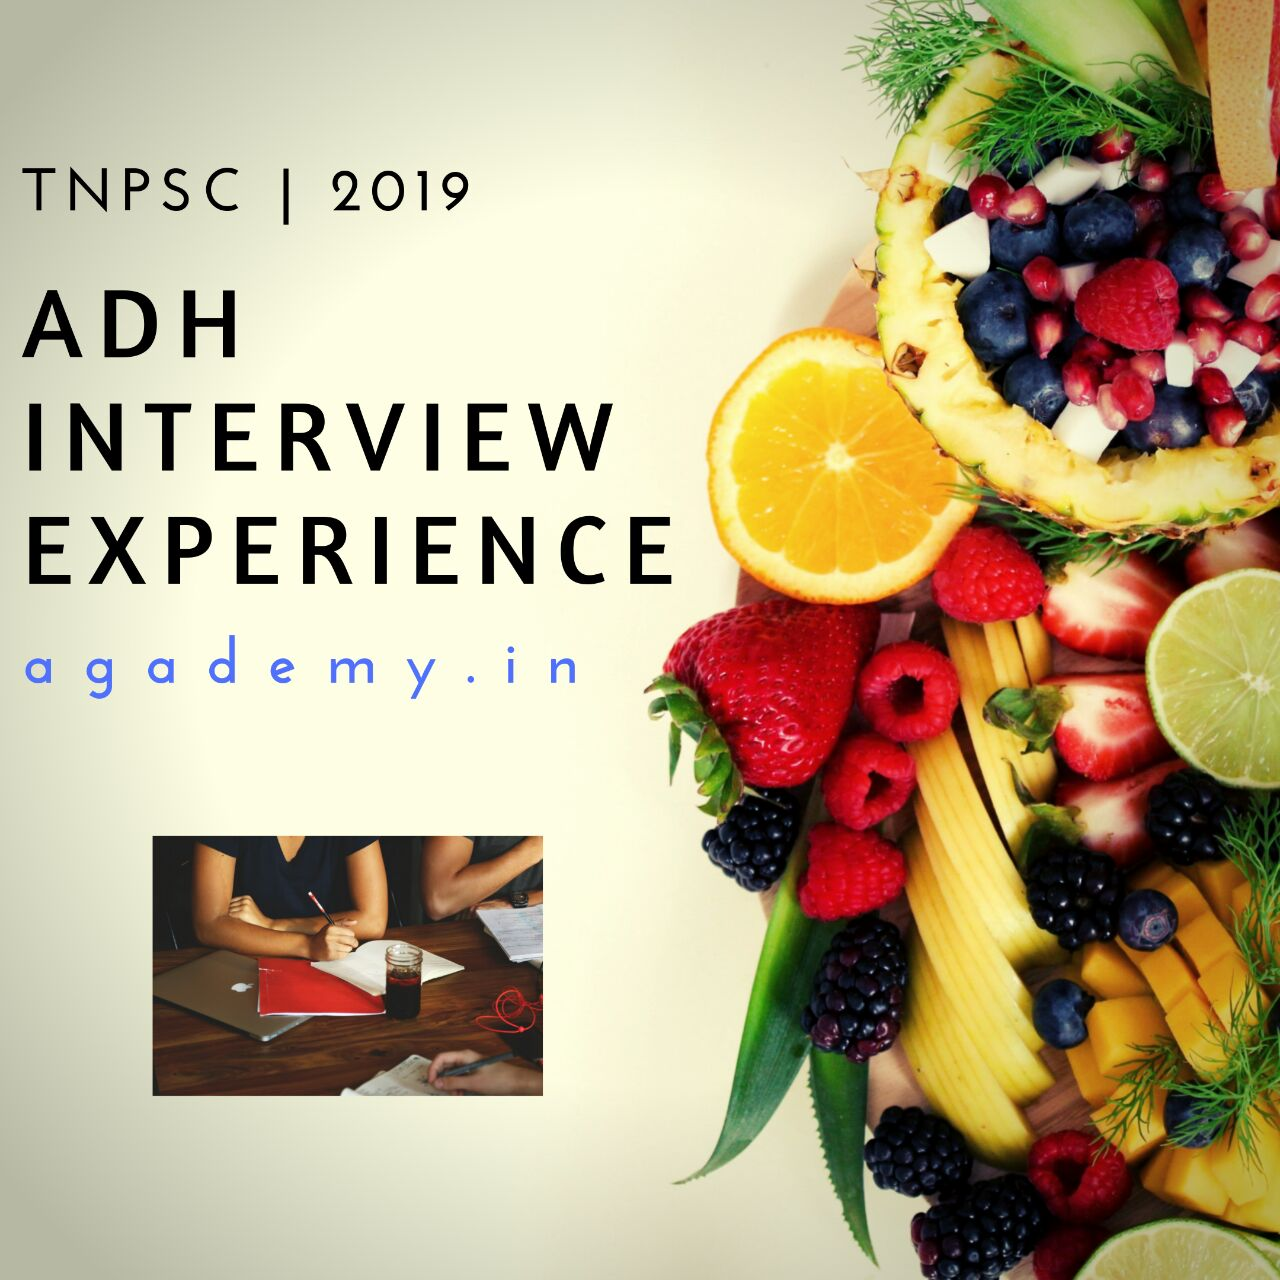 Interview experiences and questions